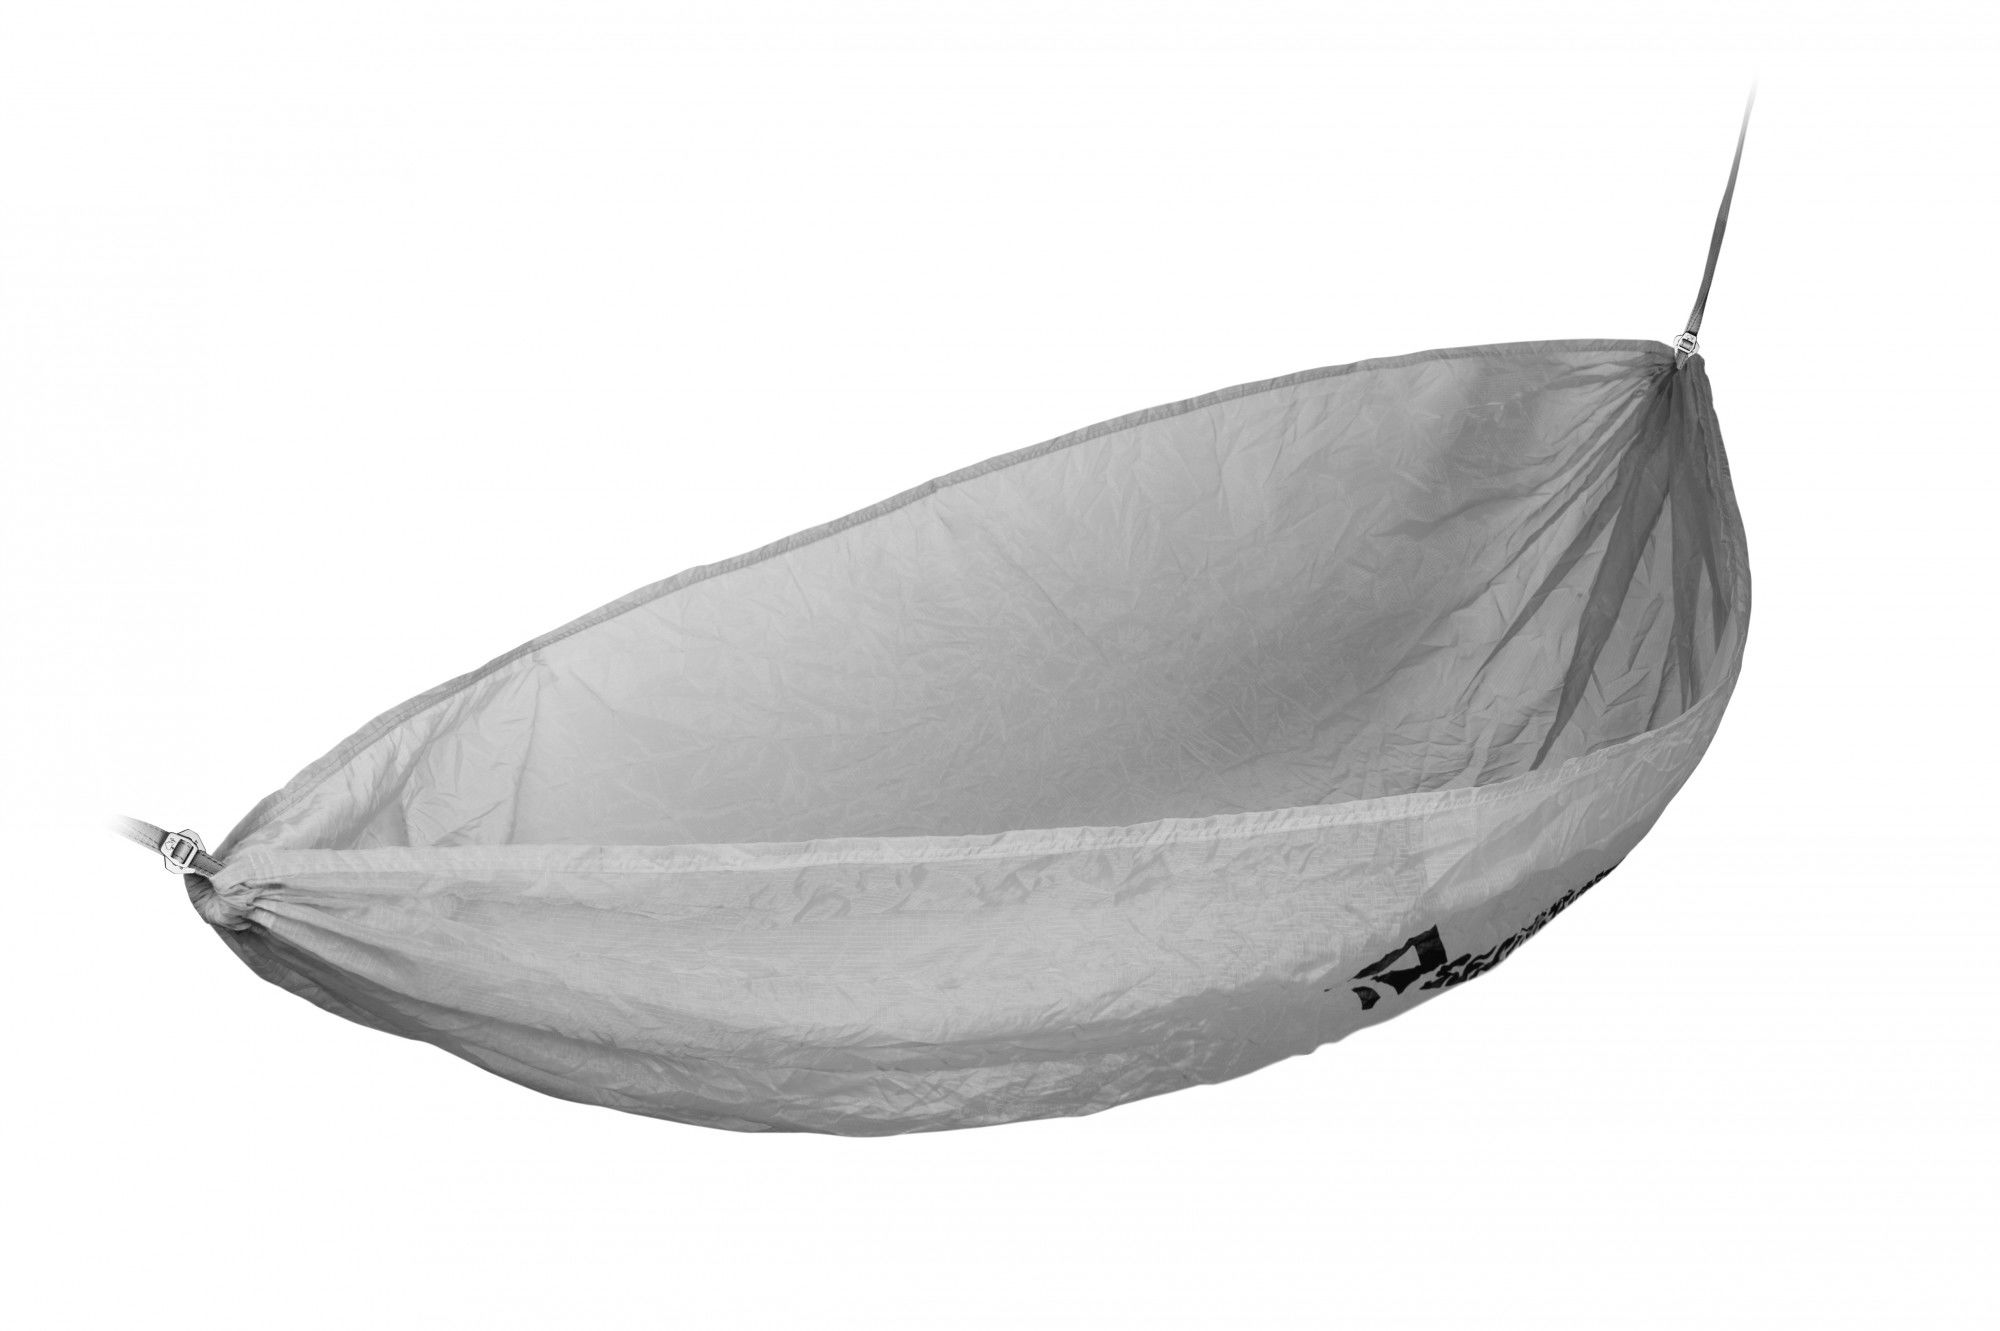 Sea to Summit Hammock Ultralight Single Grau, One Size -Farbe Grey, One Size